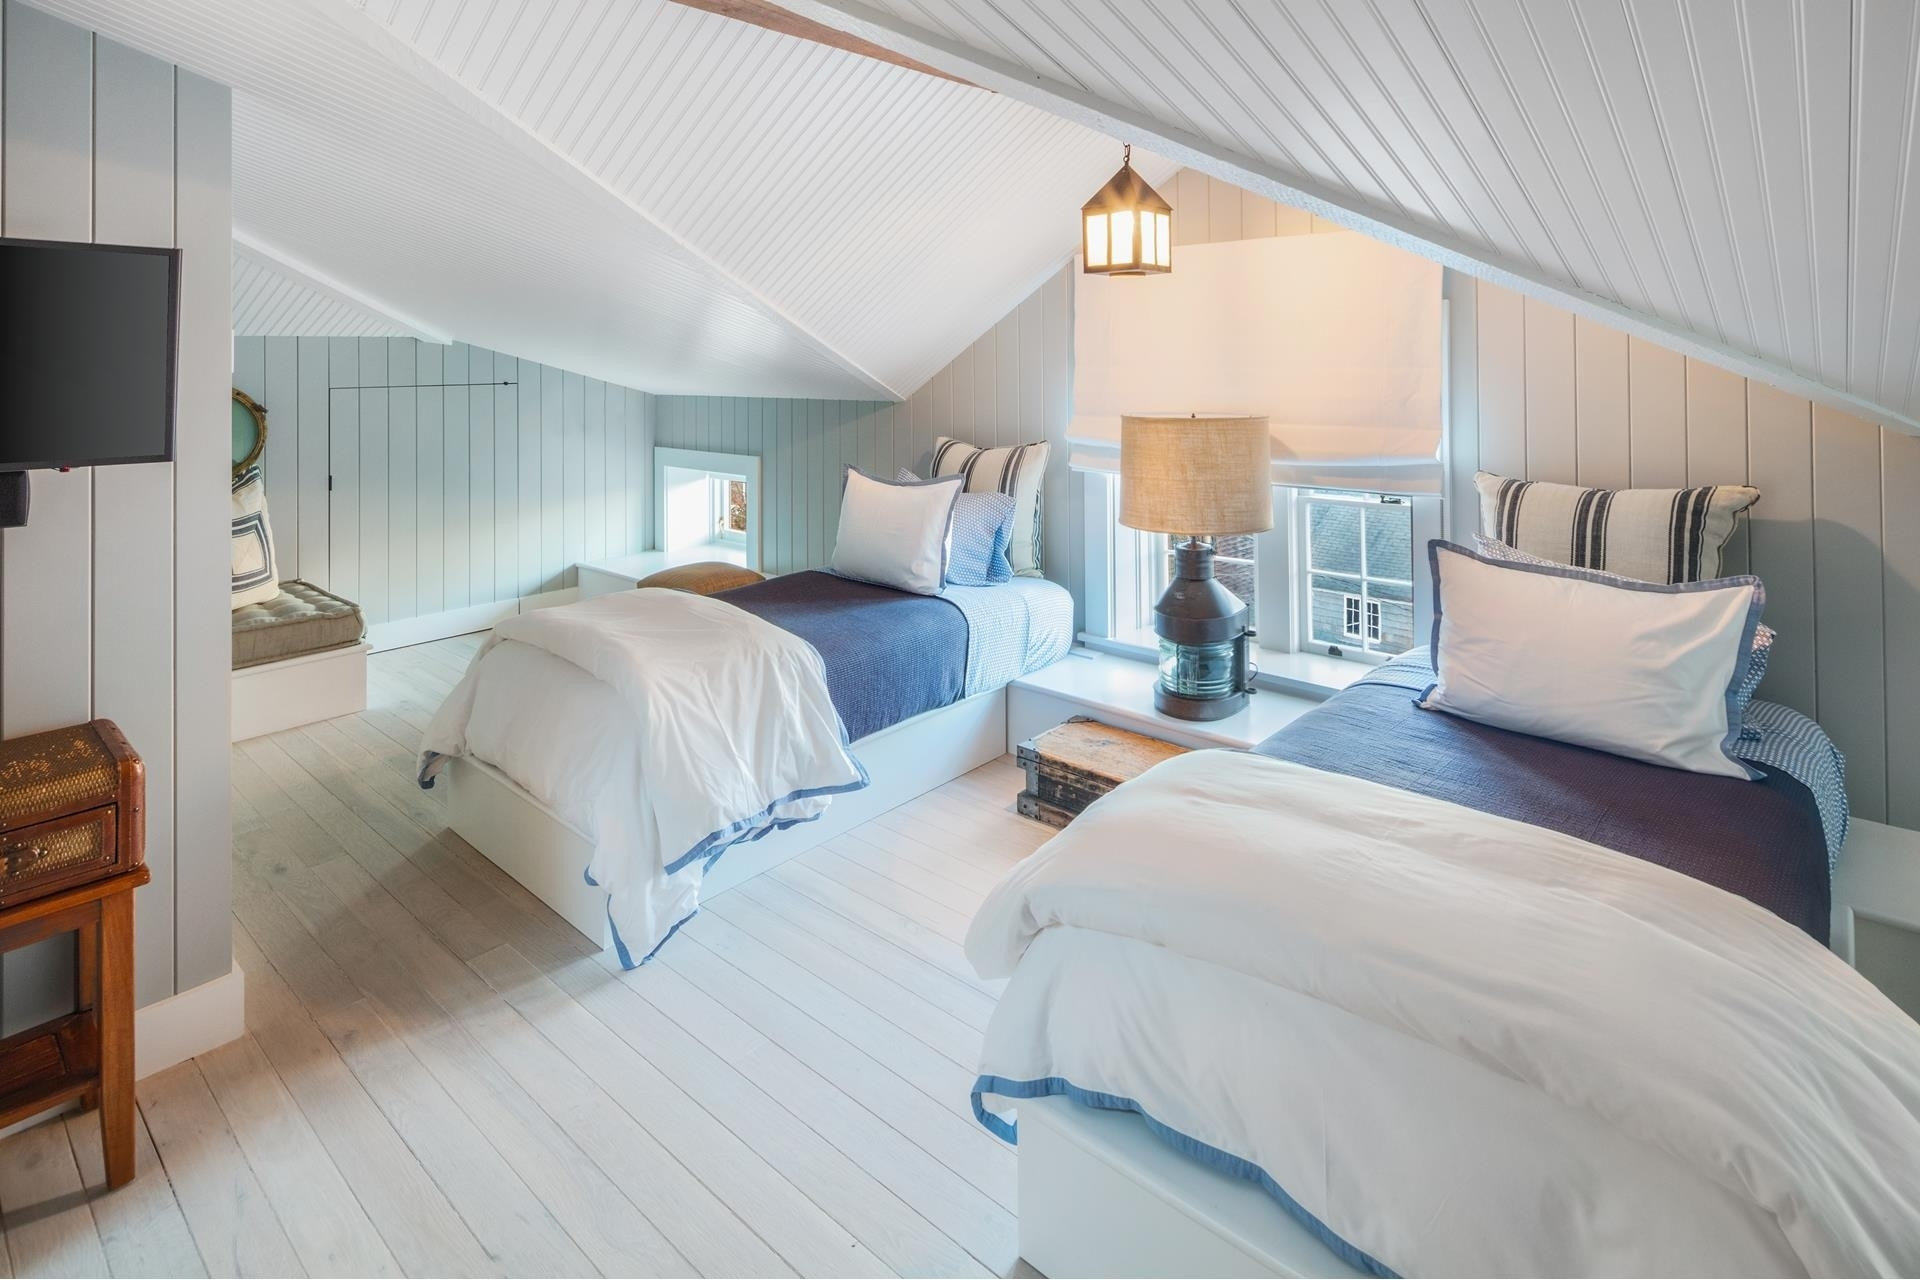 12. Single Family Homes for Sale at Sag Harbor Village, Sag Harbor, NY 11963